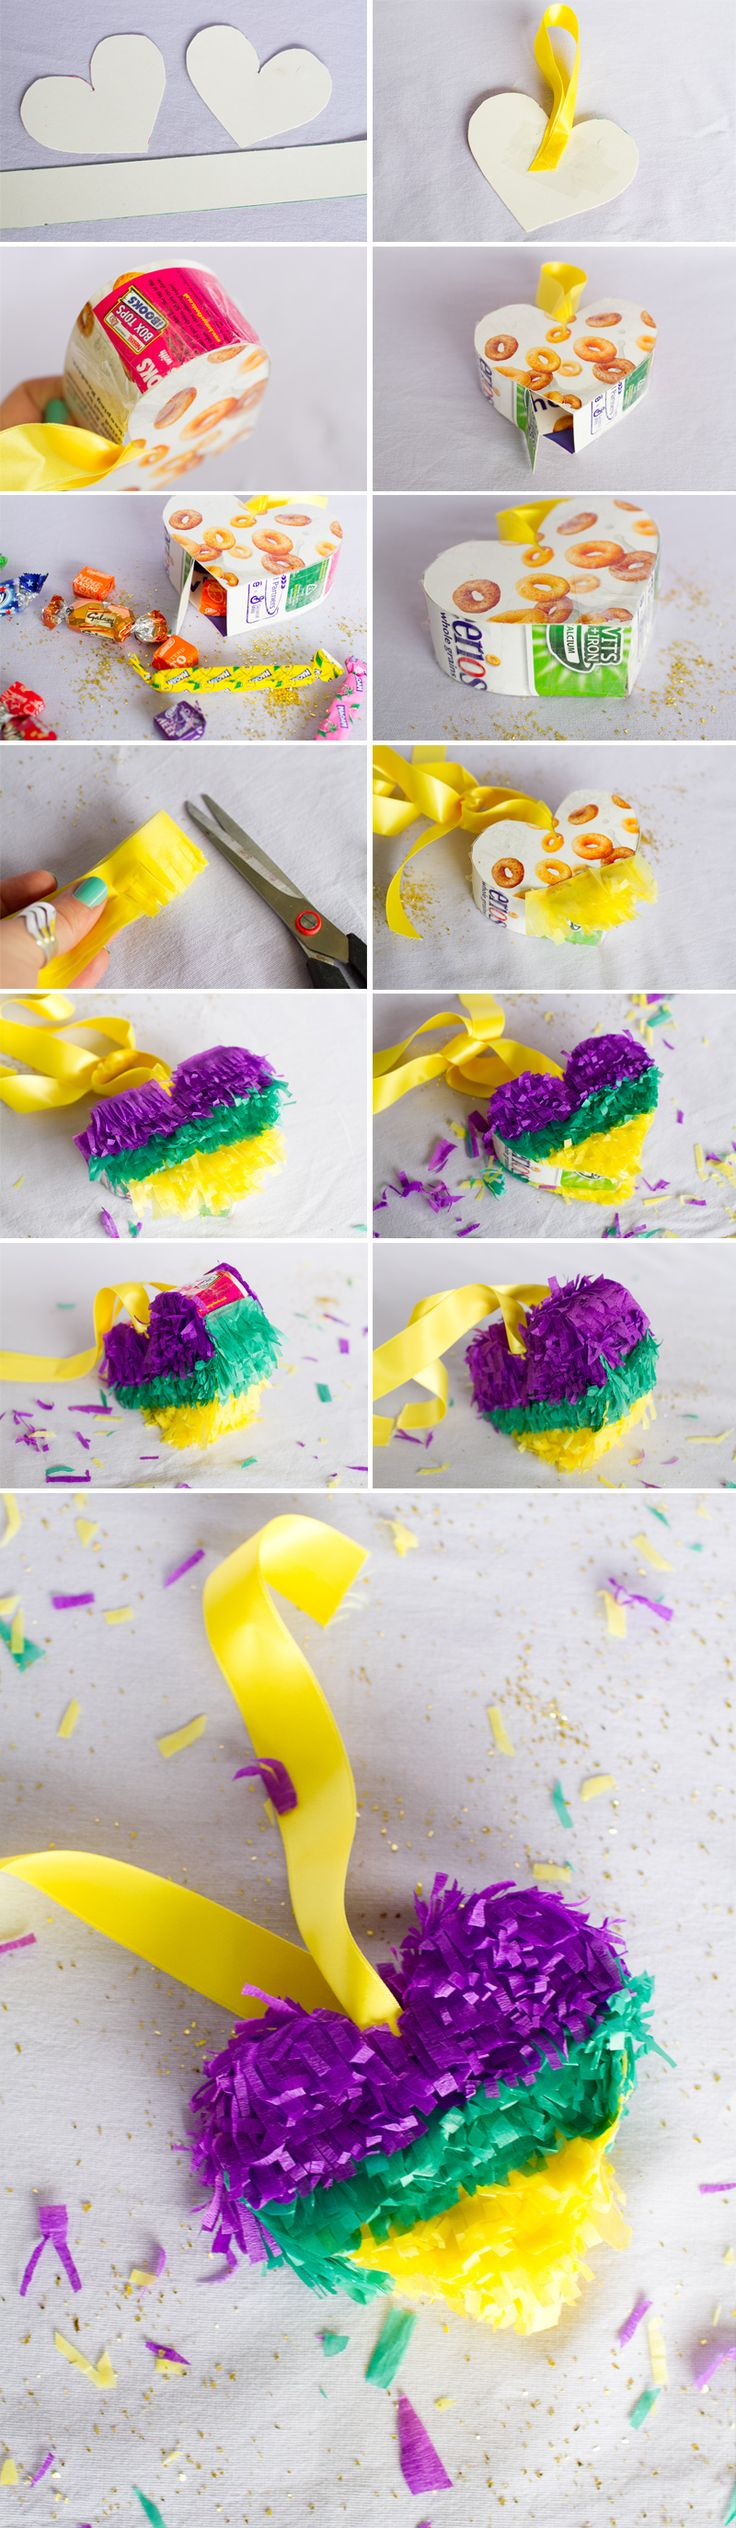 Mini heart pinata DIY Tutorial how to make a pinata wedding diy mexican wedding fiesta cinco de mayo fun